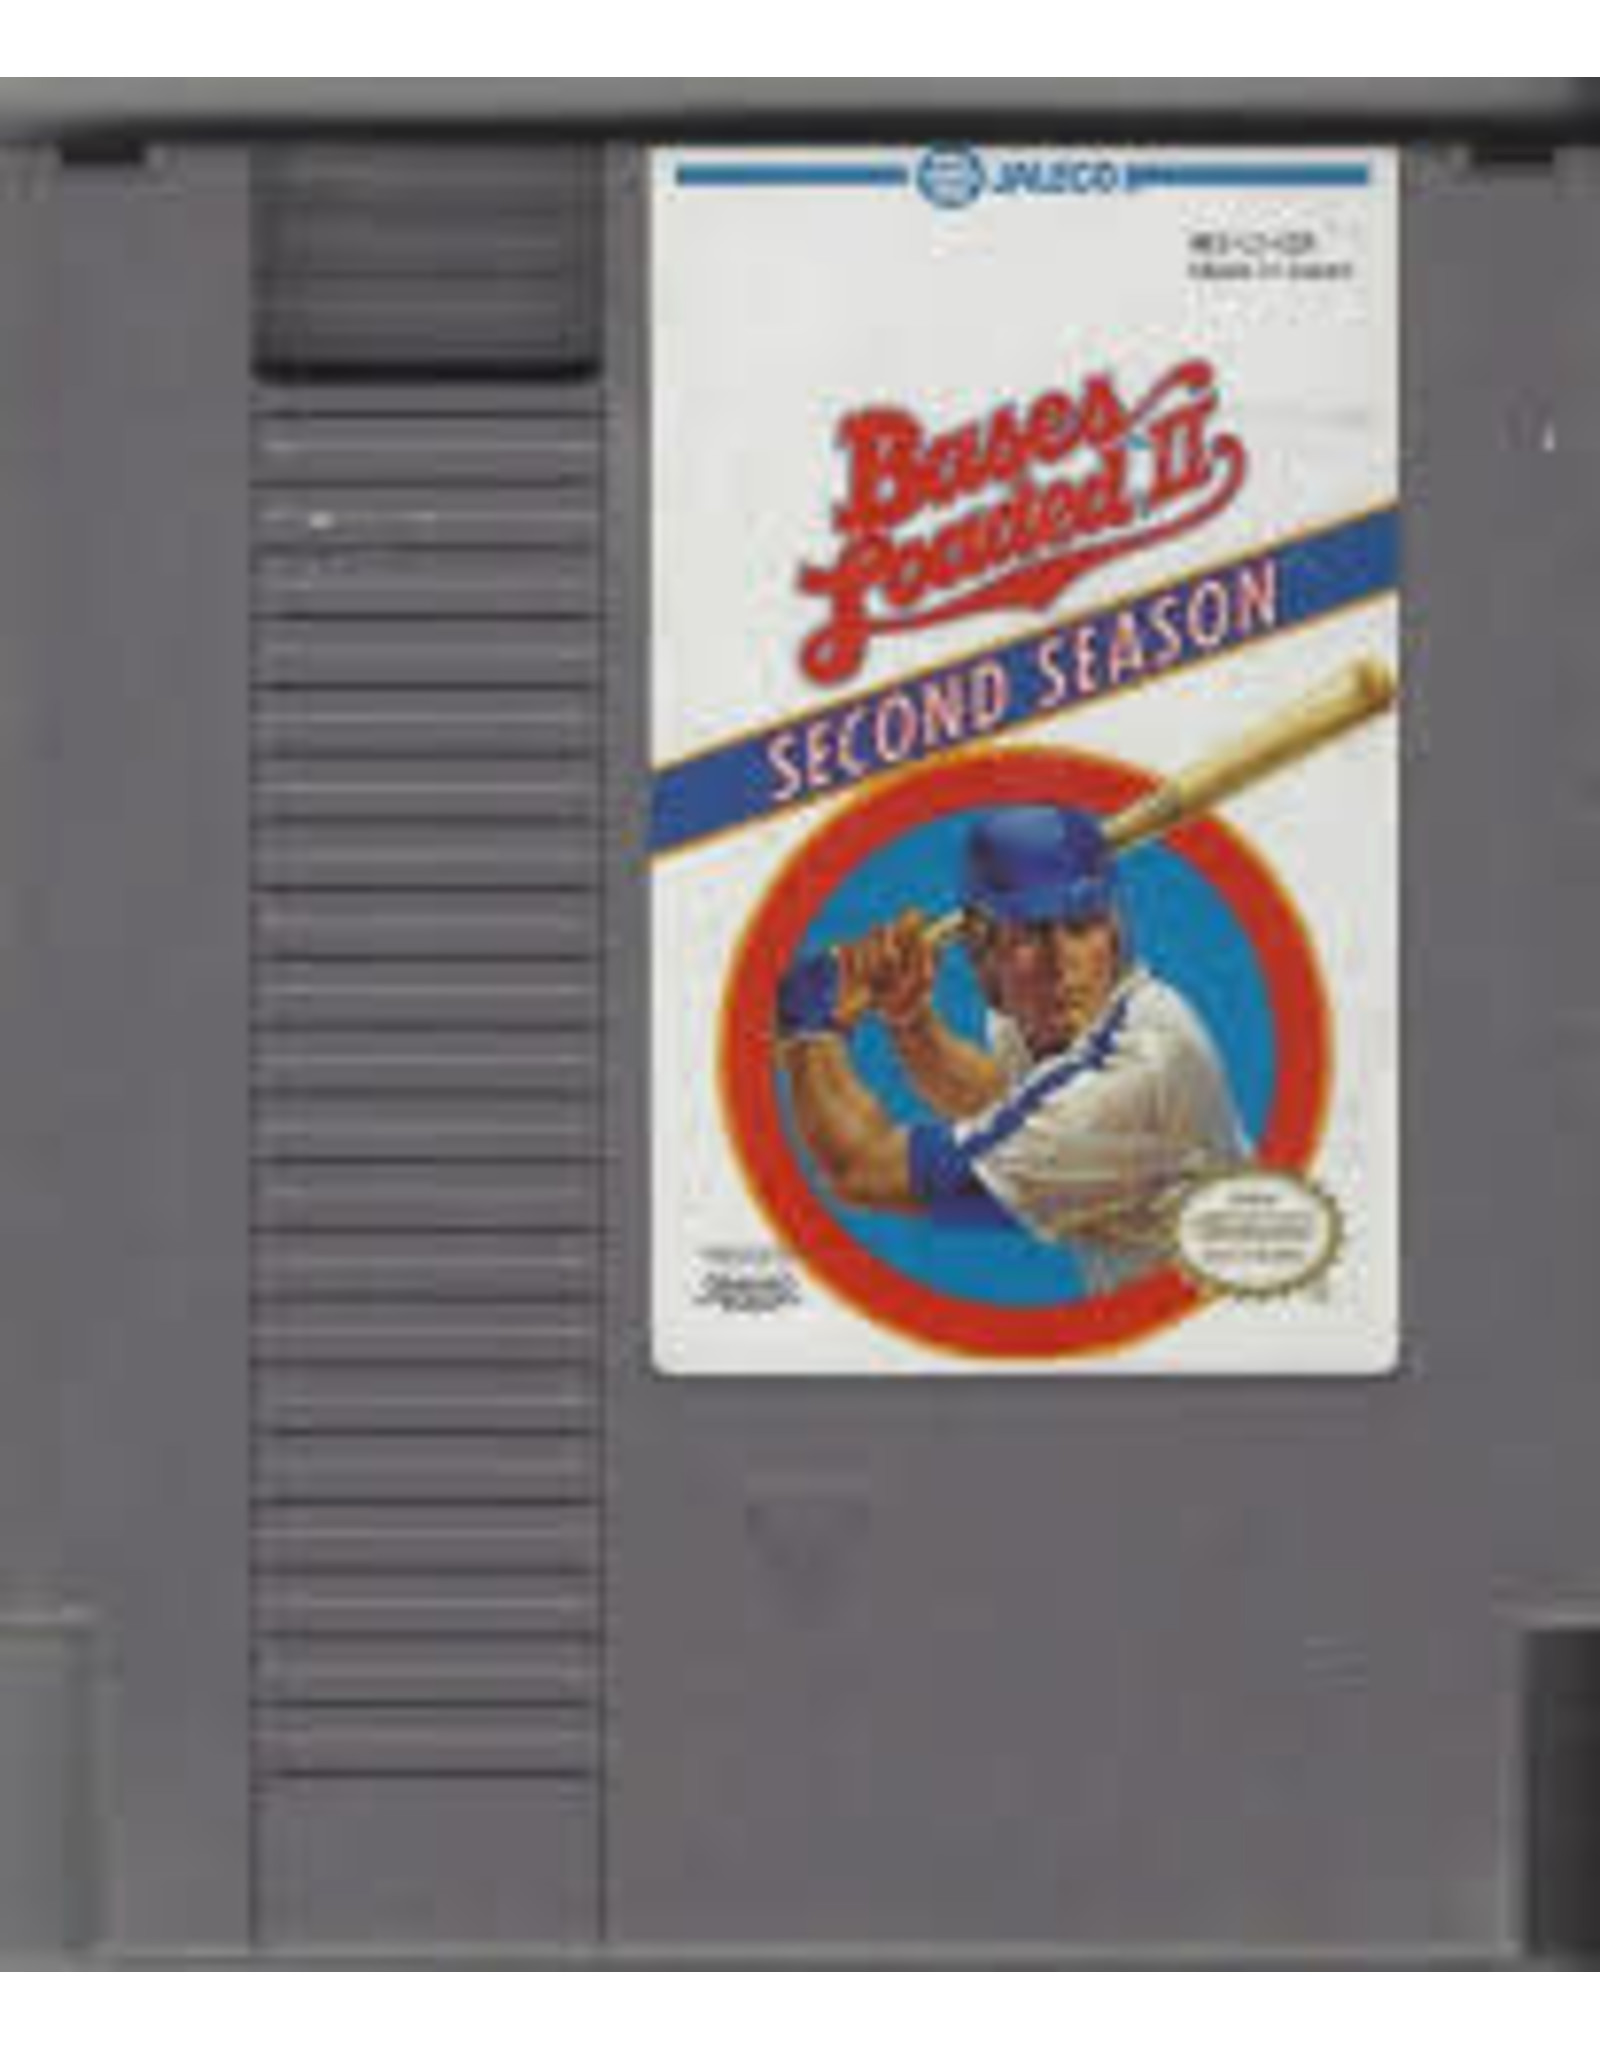 Bases Loaded 2 Second Season (NES)